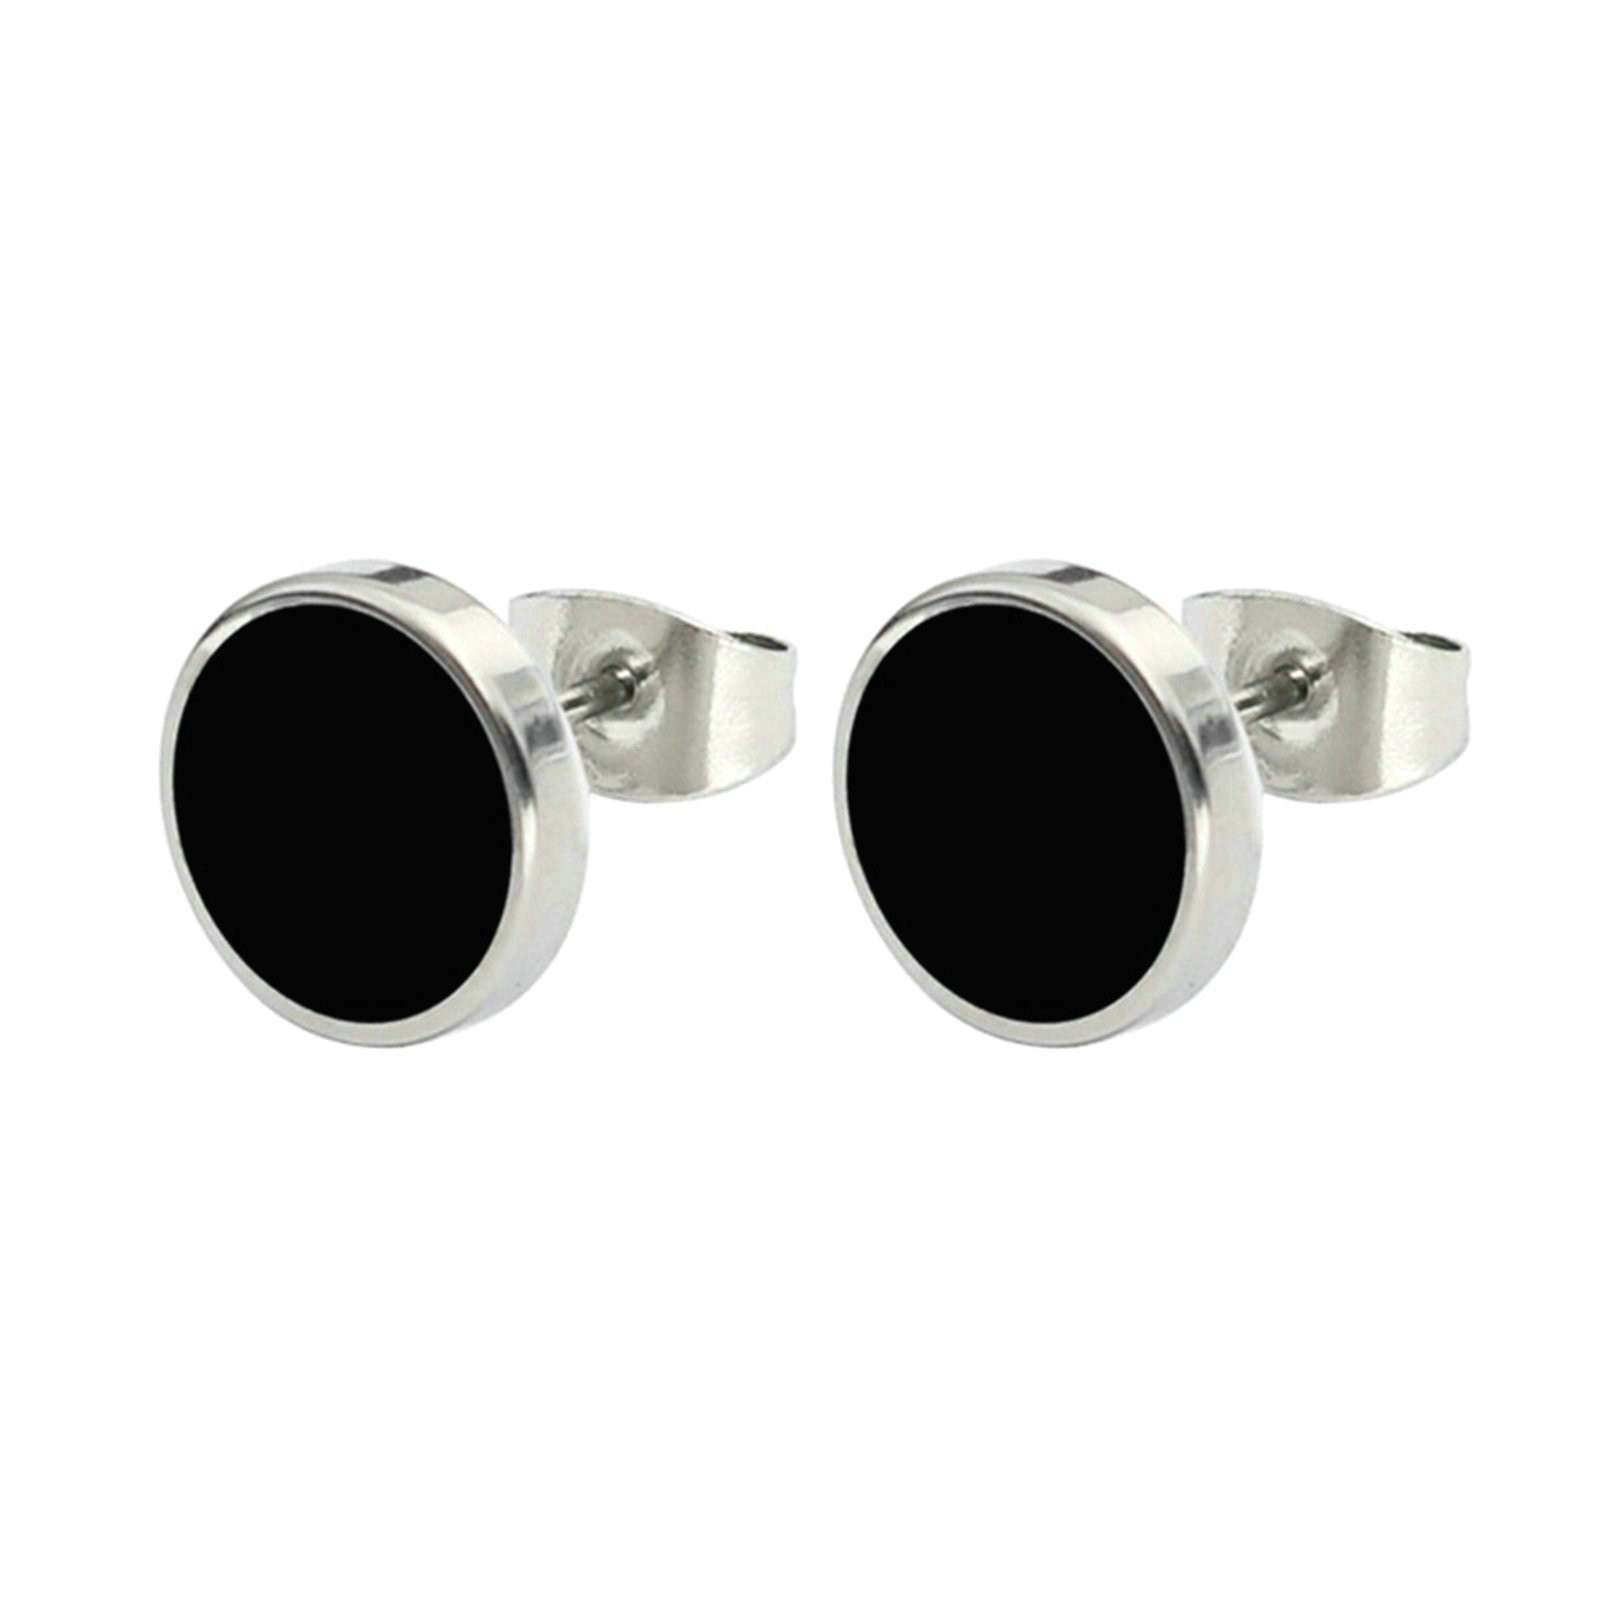 Aooaz, Gothic 10MM Stud Earrings Teens Stainless Steel Black Eound Earrings Teens Women Men Novelty